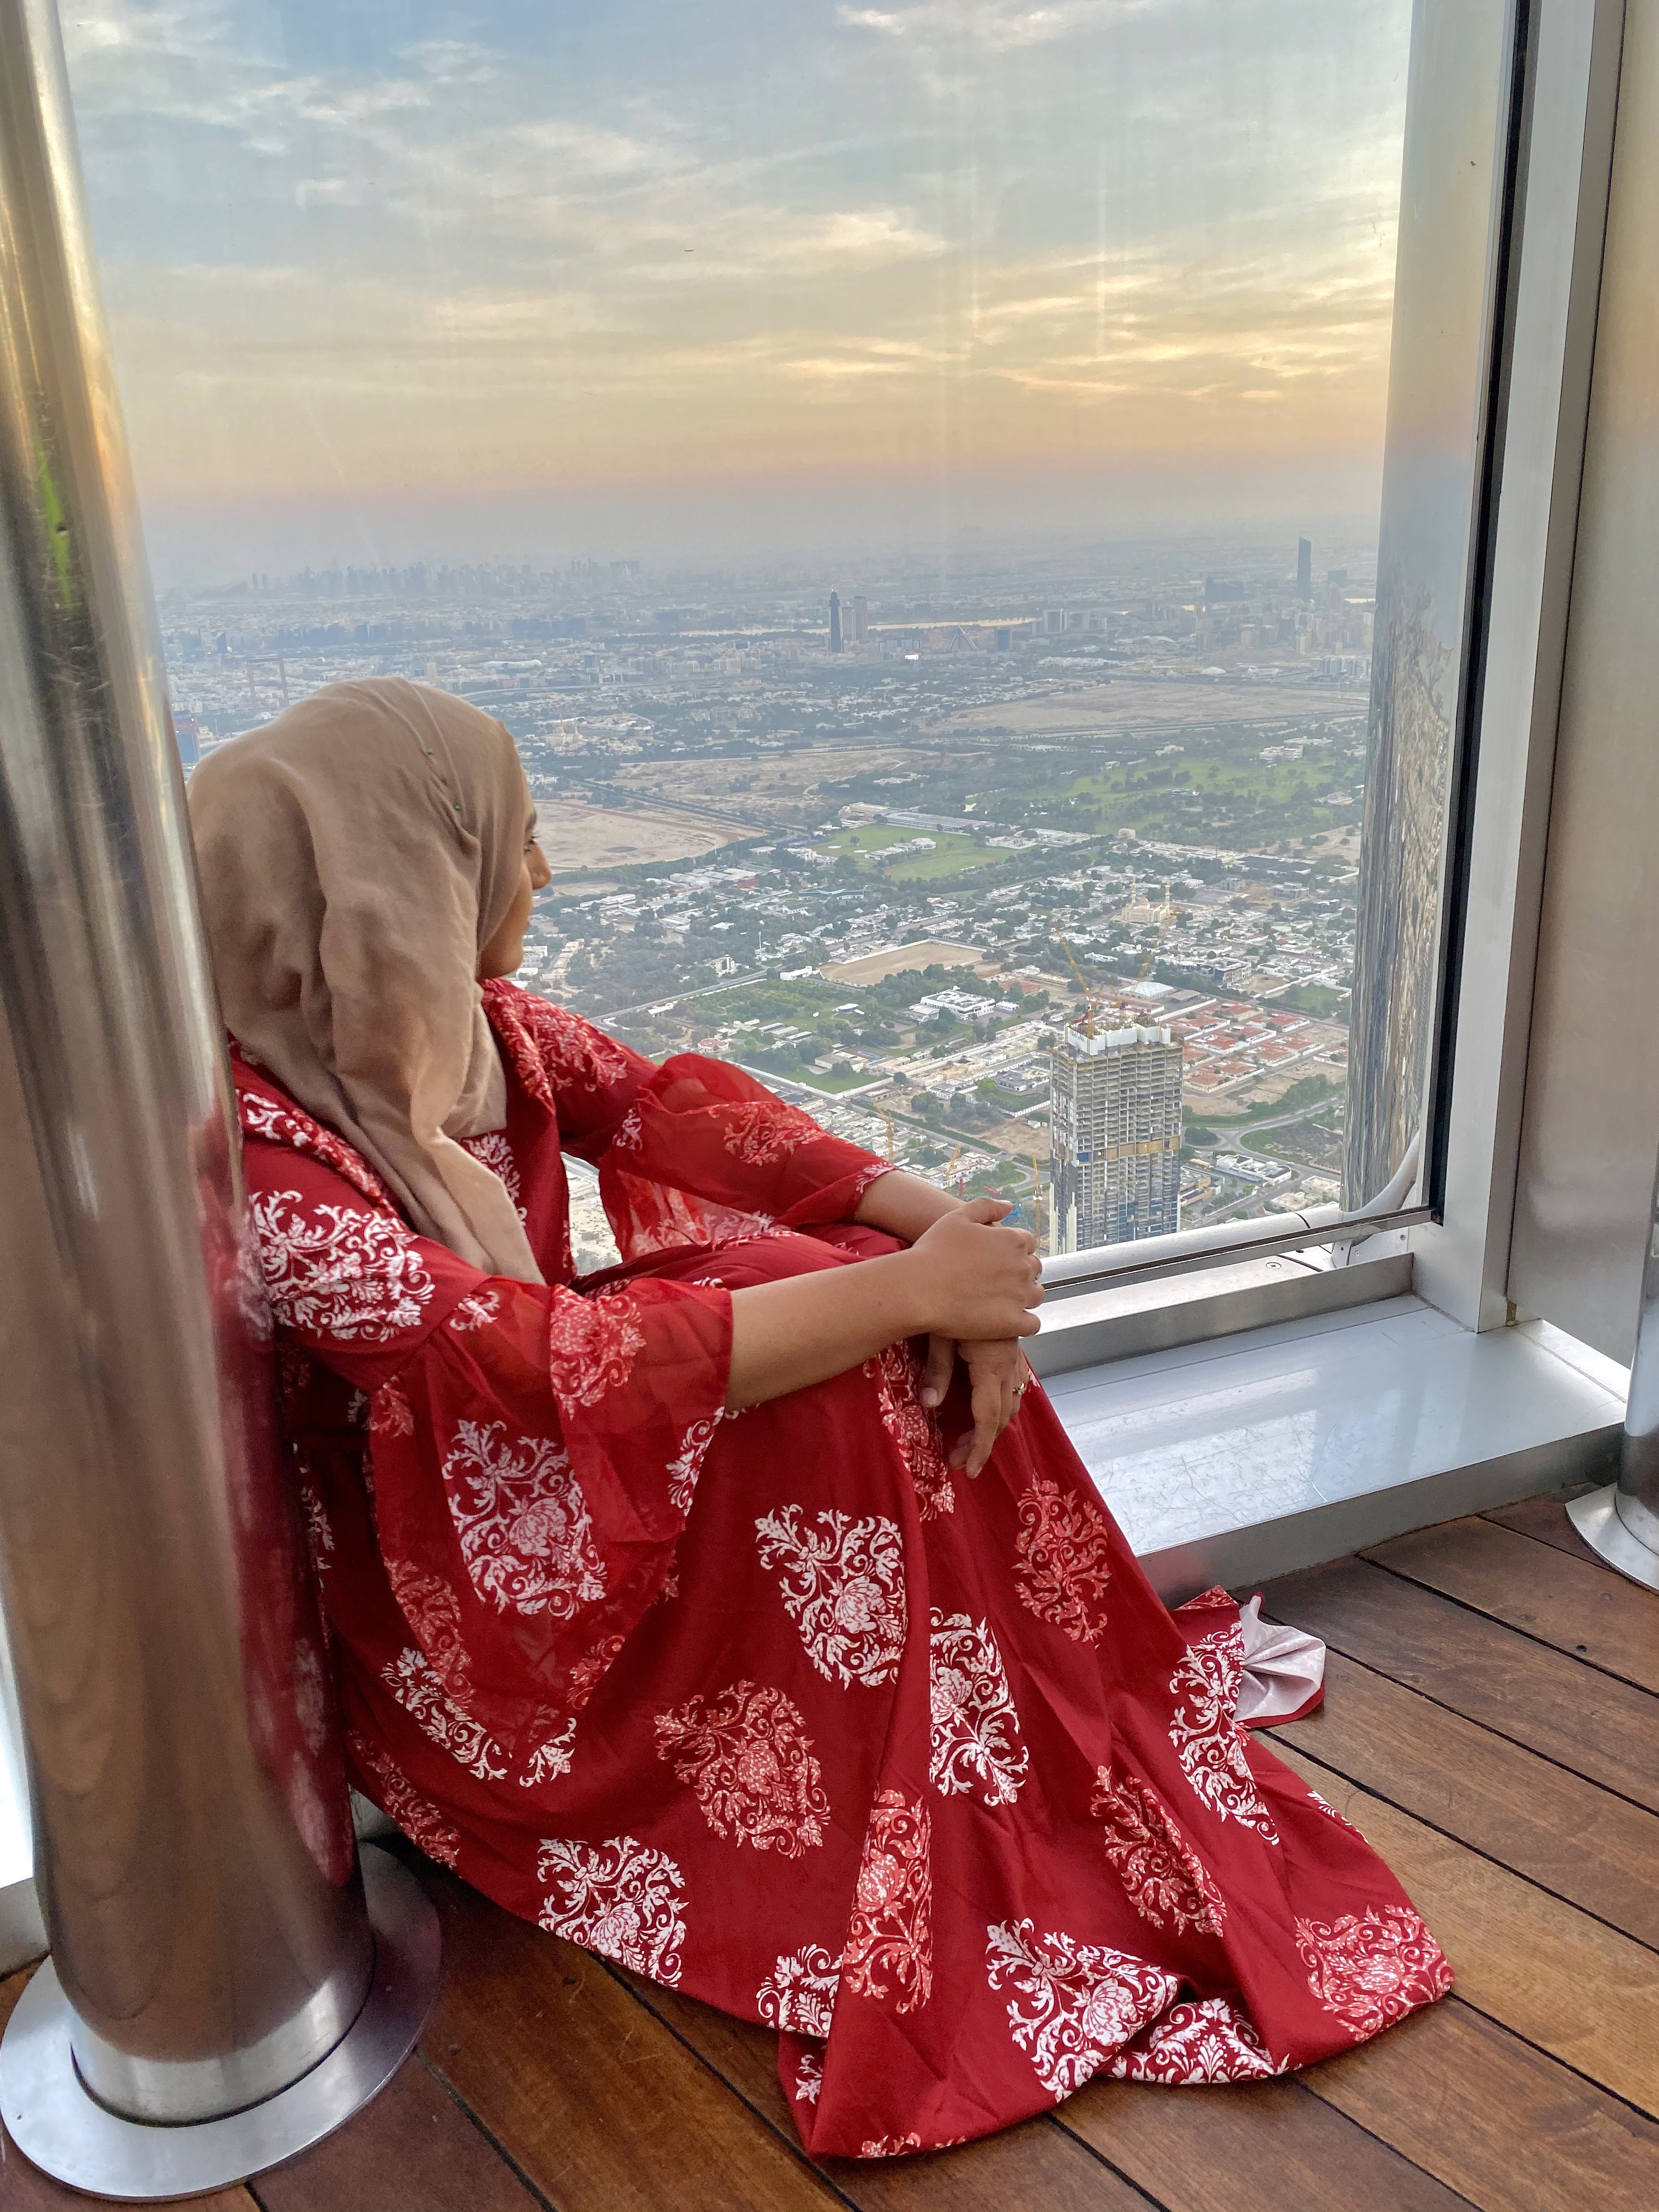 Rafa Farihah Red Maxi Dress Looking at Sunrise Burj Khalifa Dubai